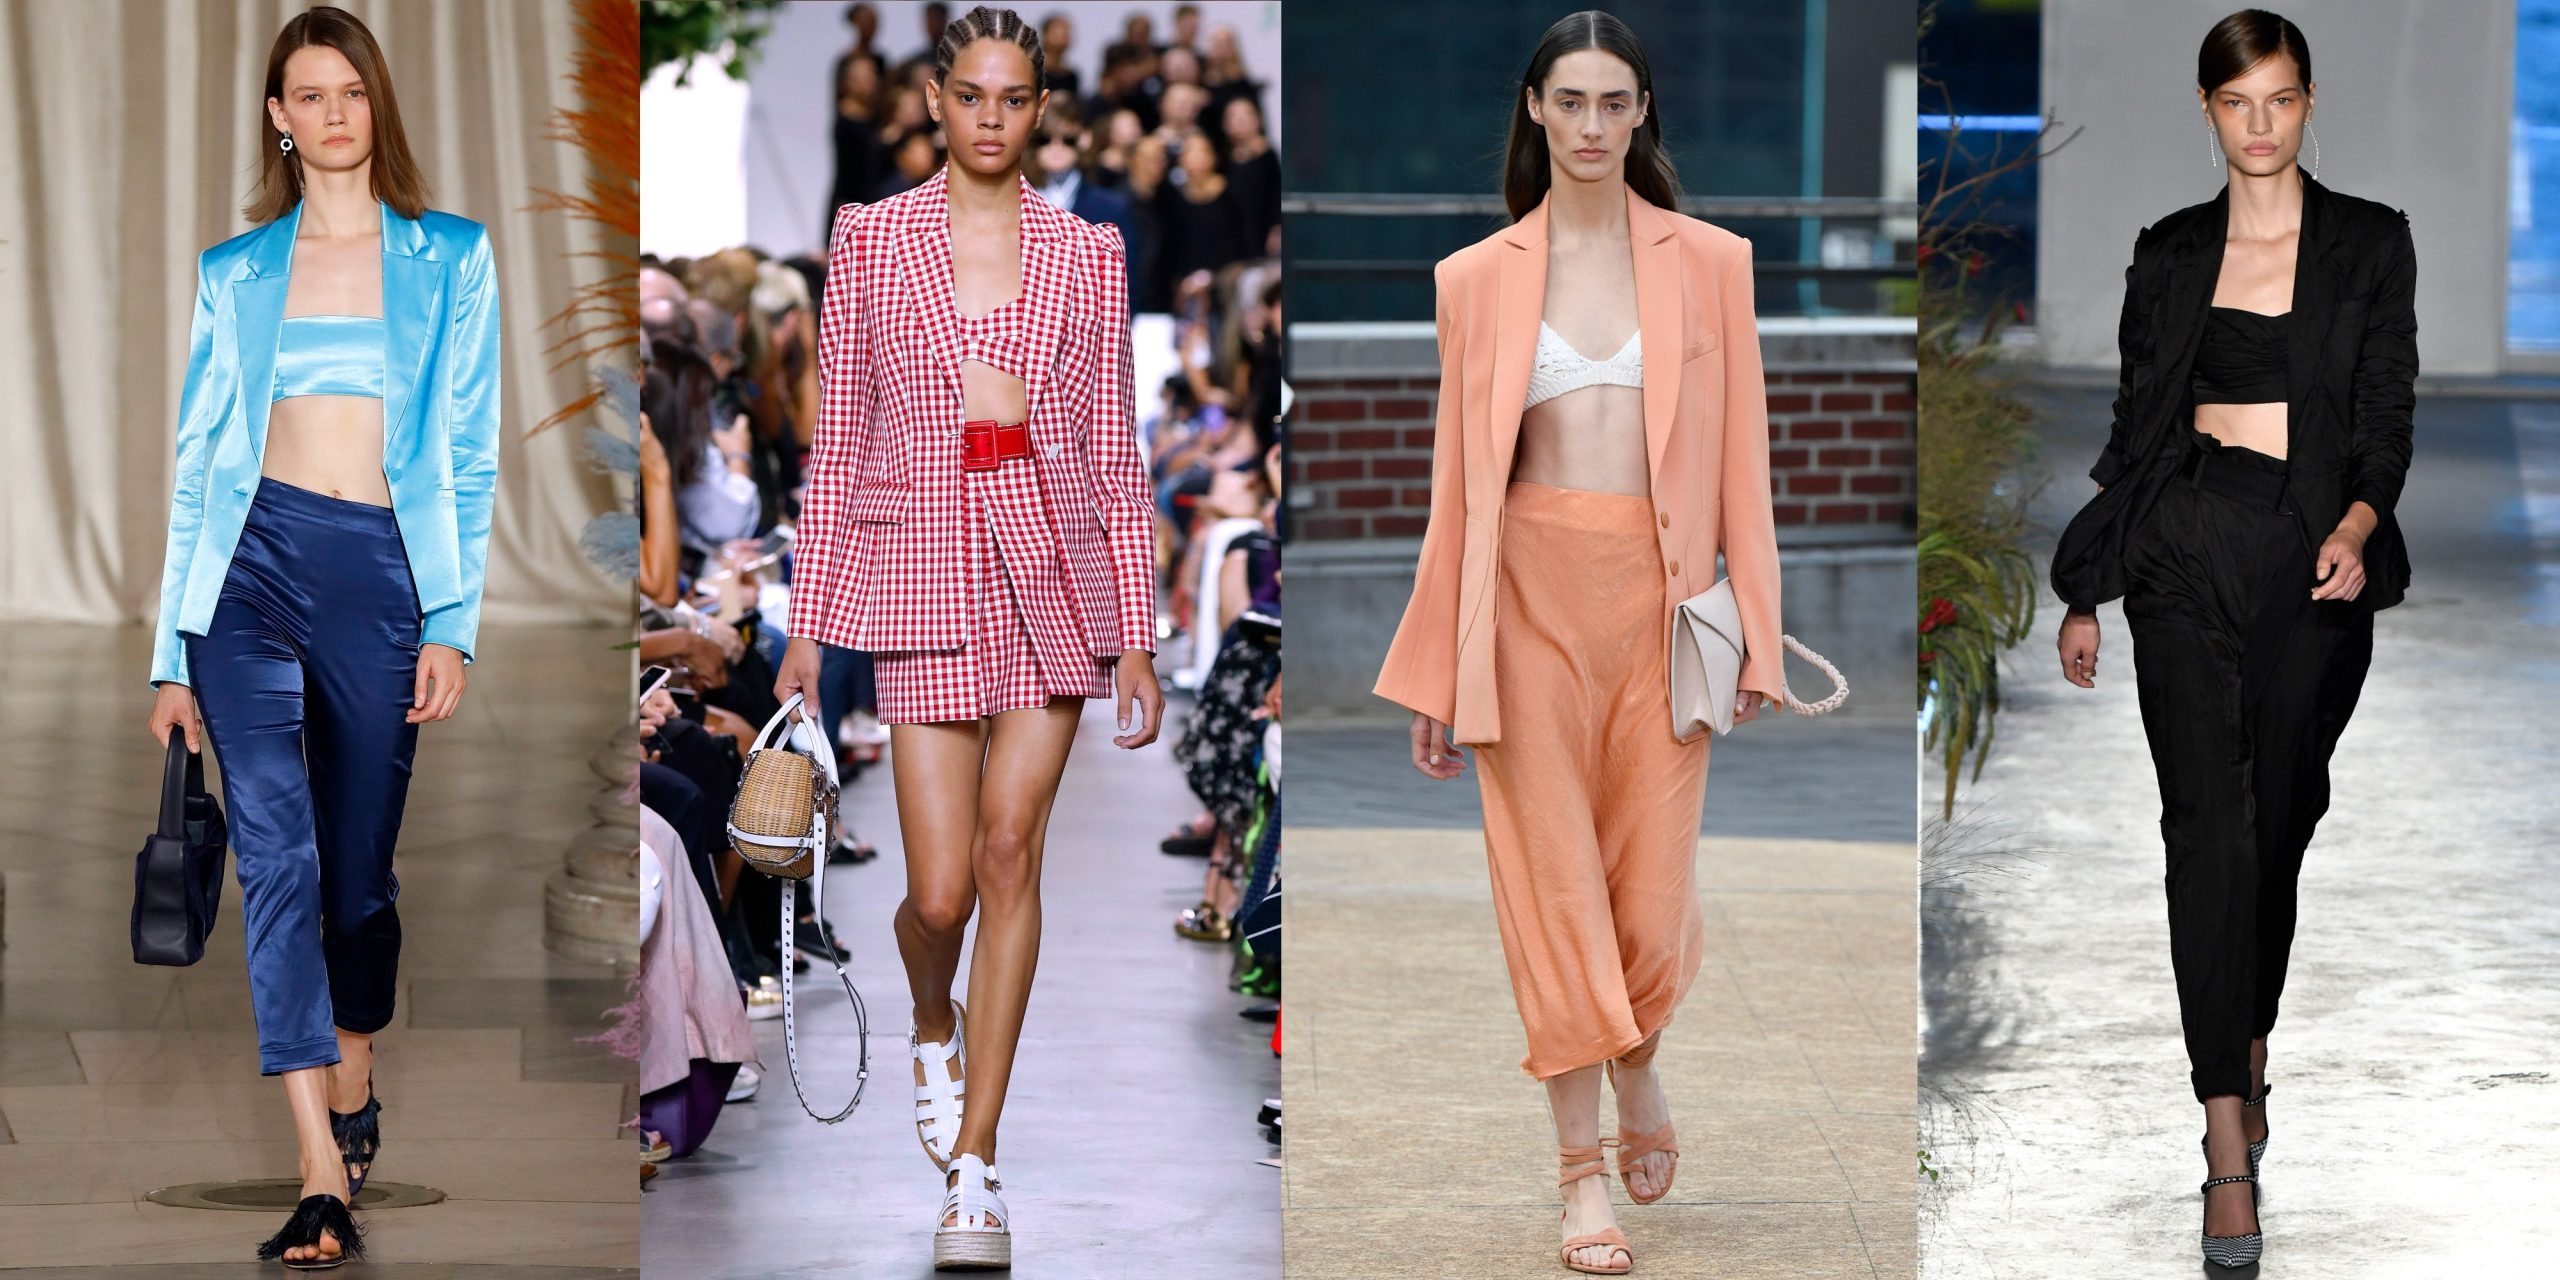 Top 5 Trendy Outfits for a Stylish Look in 2020